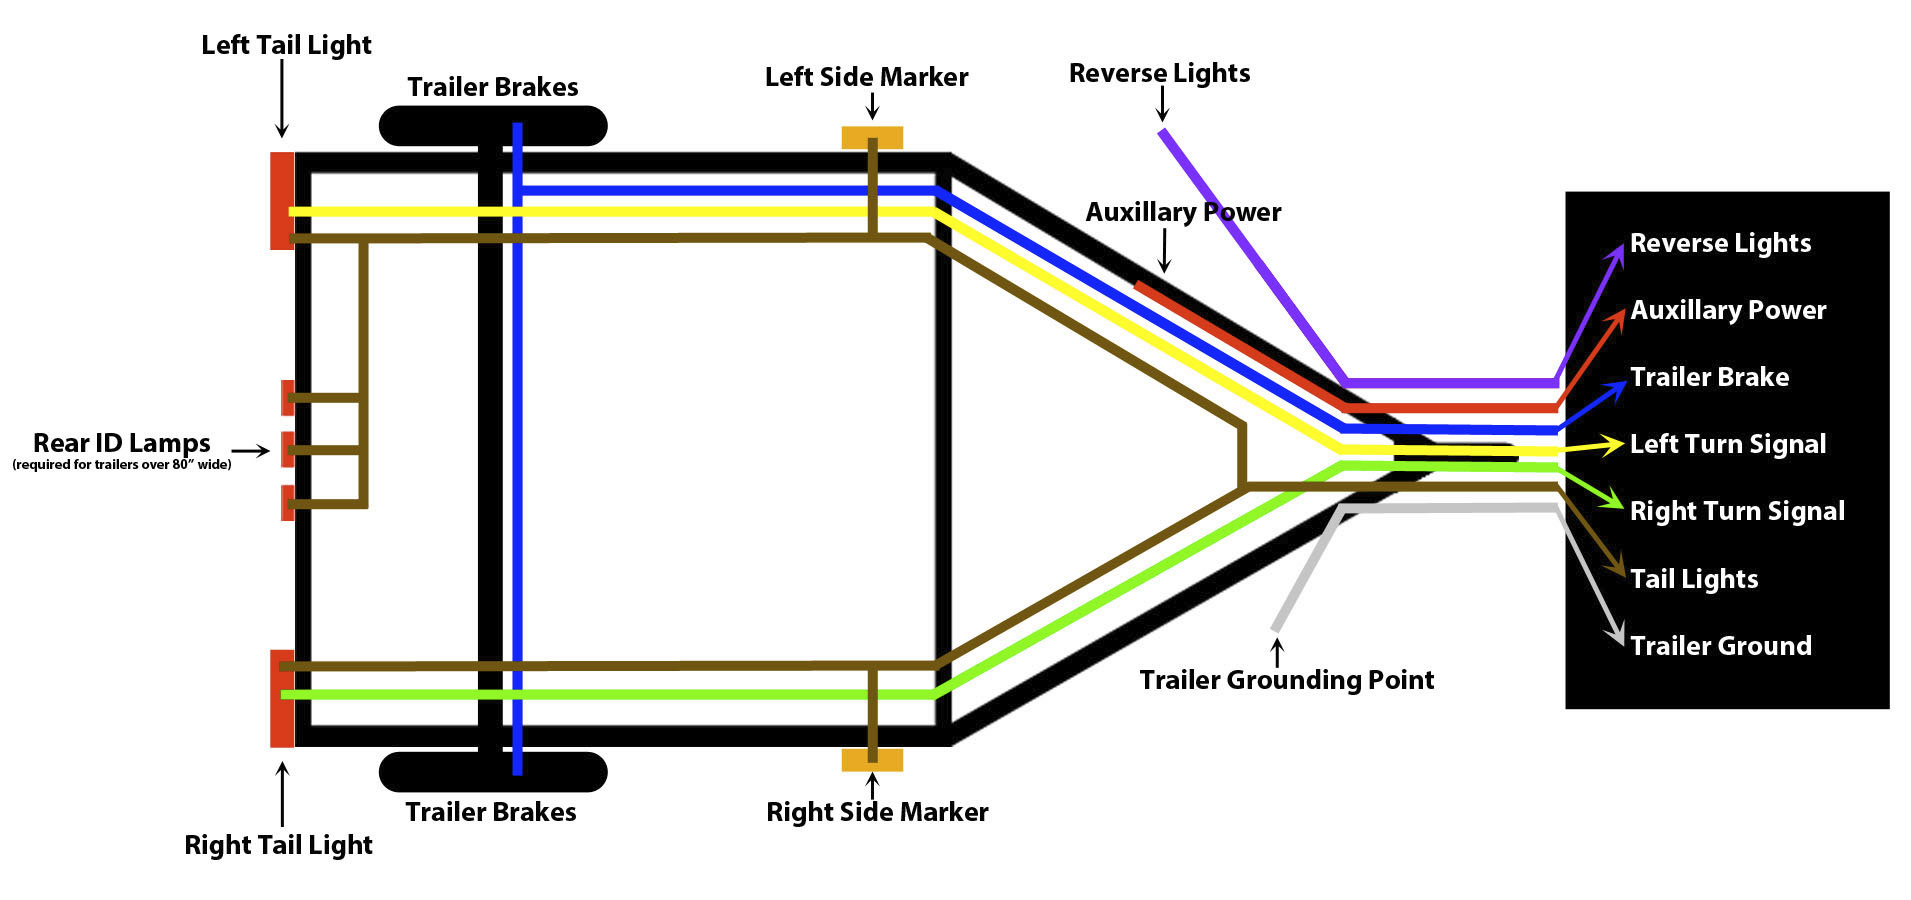 How To Wire Trailer Lights - Trailer Wiring Guide & Videos - Trailer Light Wiring Diagram 7 Way